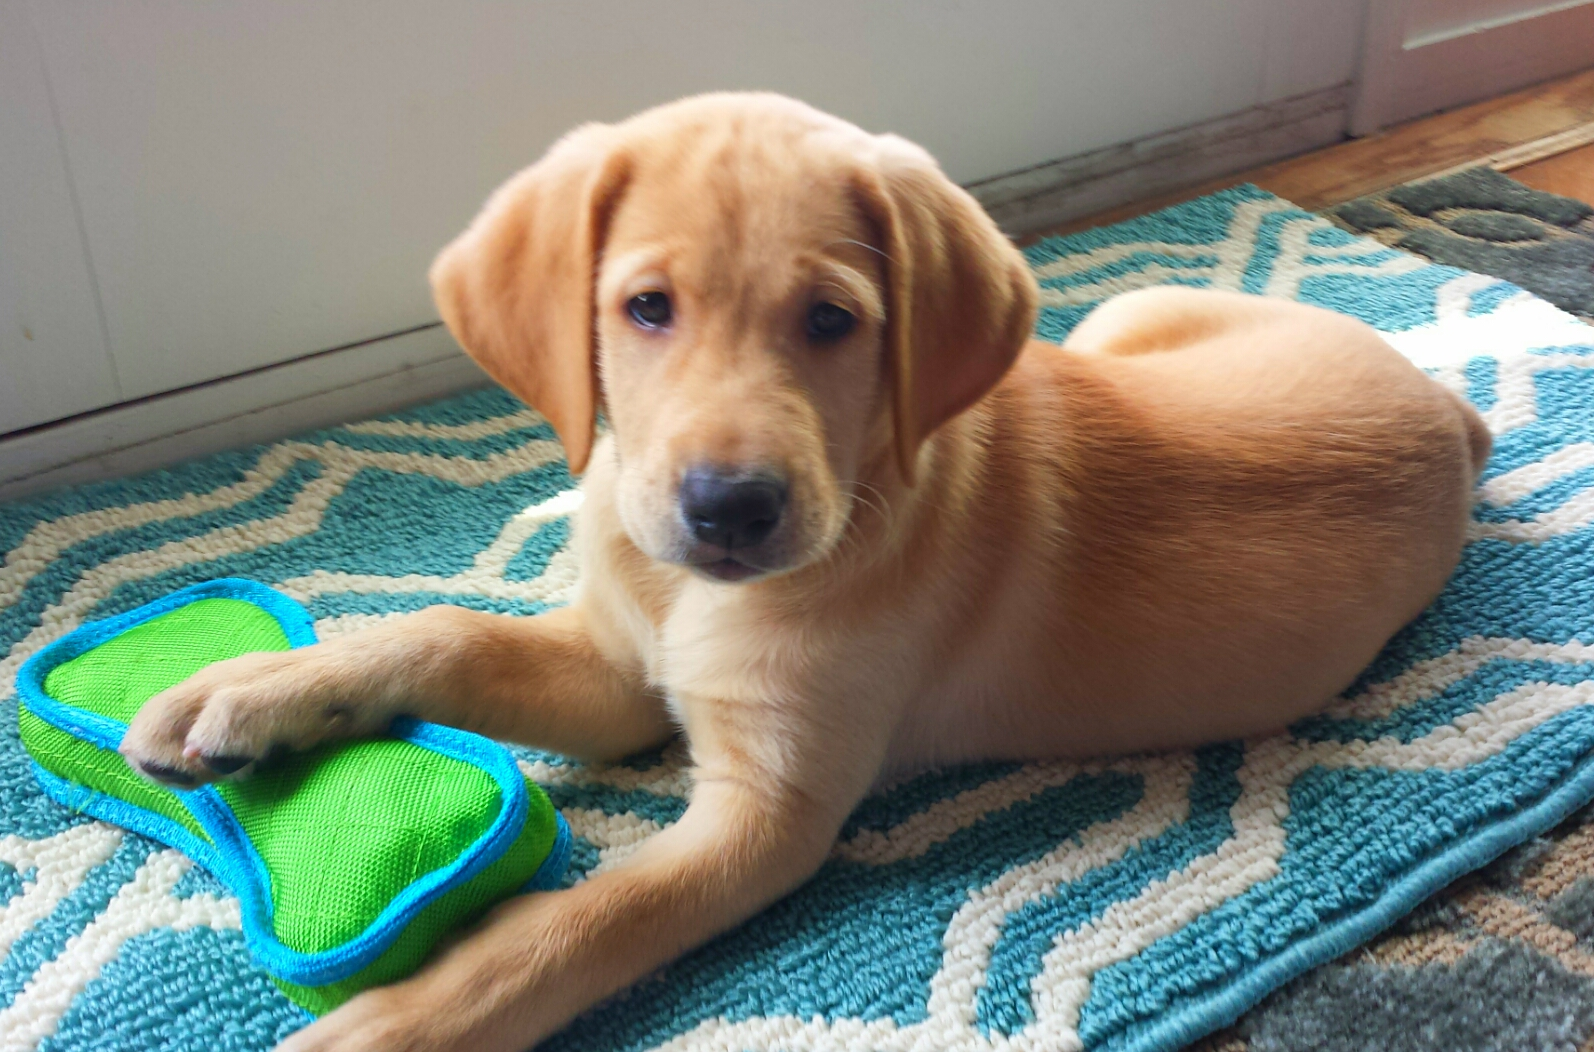 Another picture of the Yellow Labrador Retriever, Argos that came from Dominator Dogs.